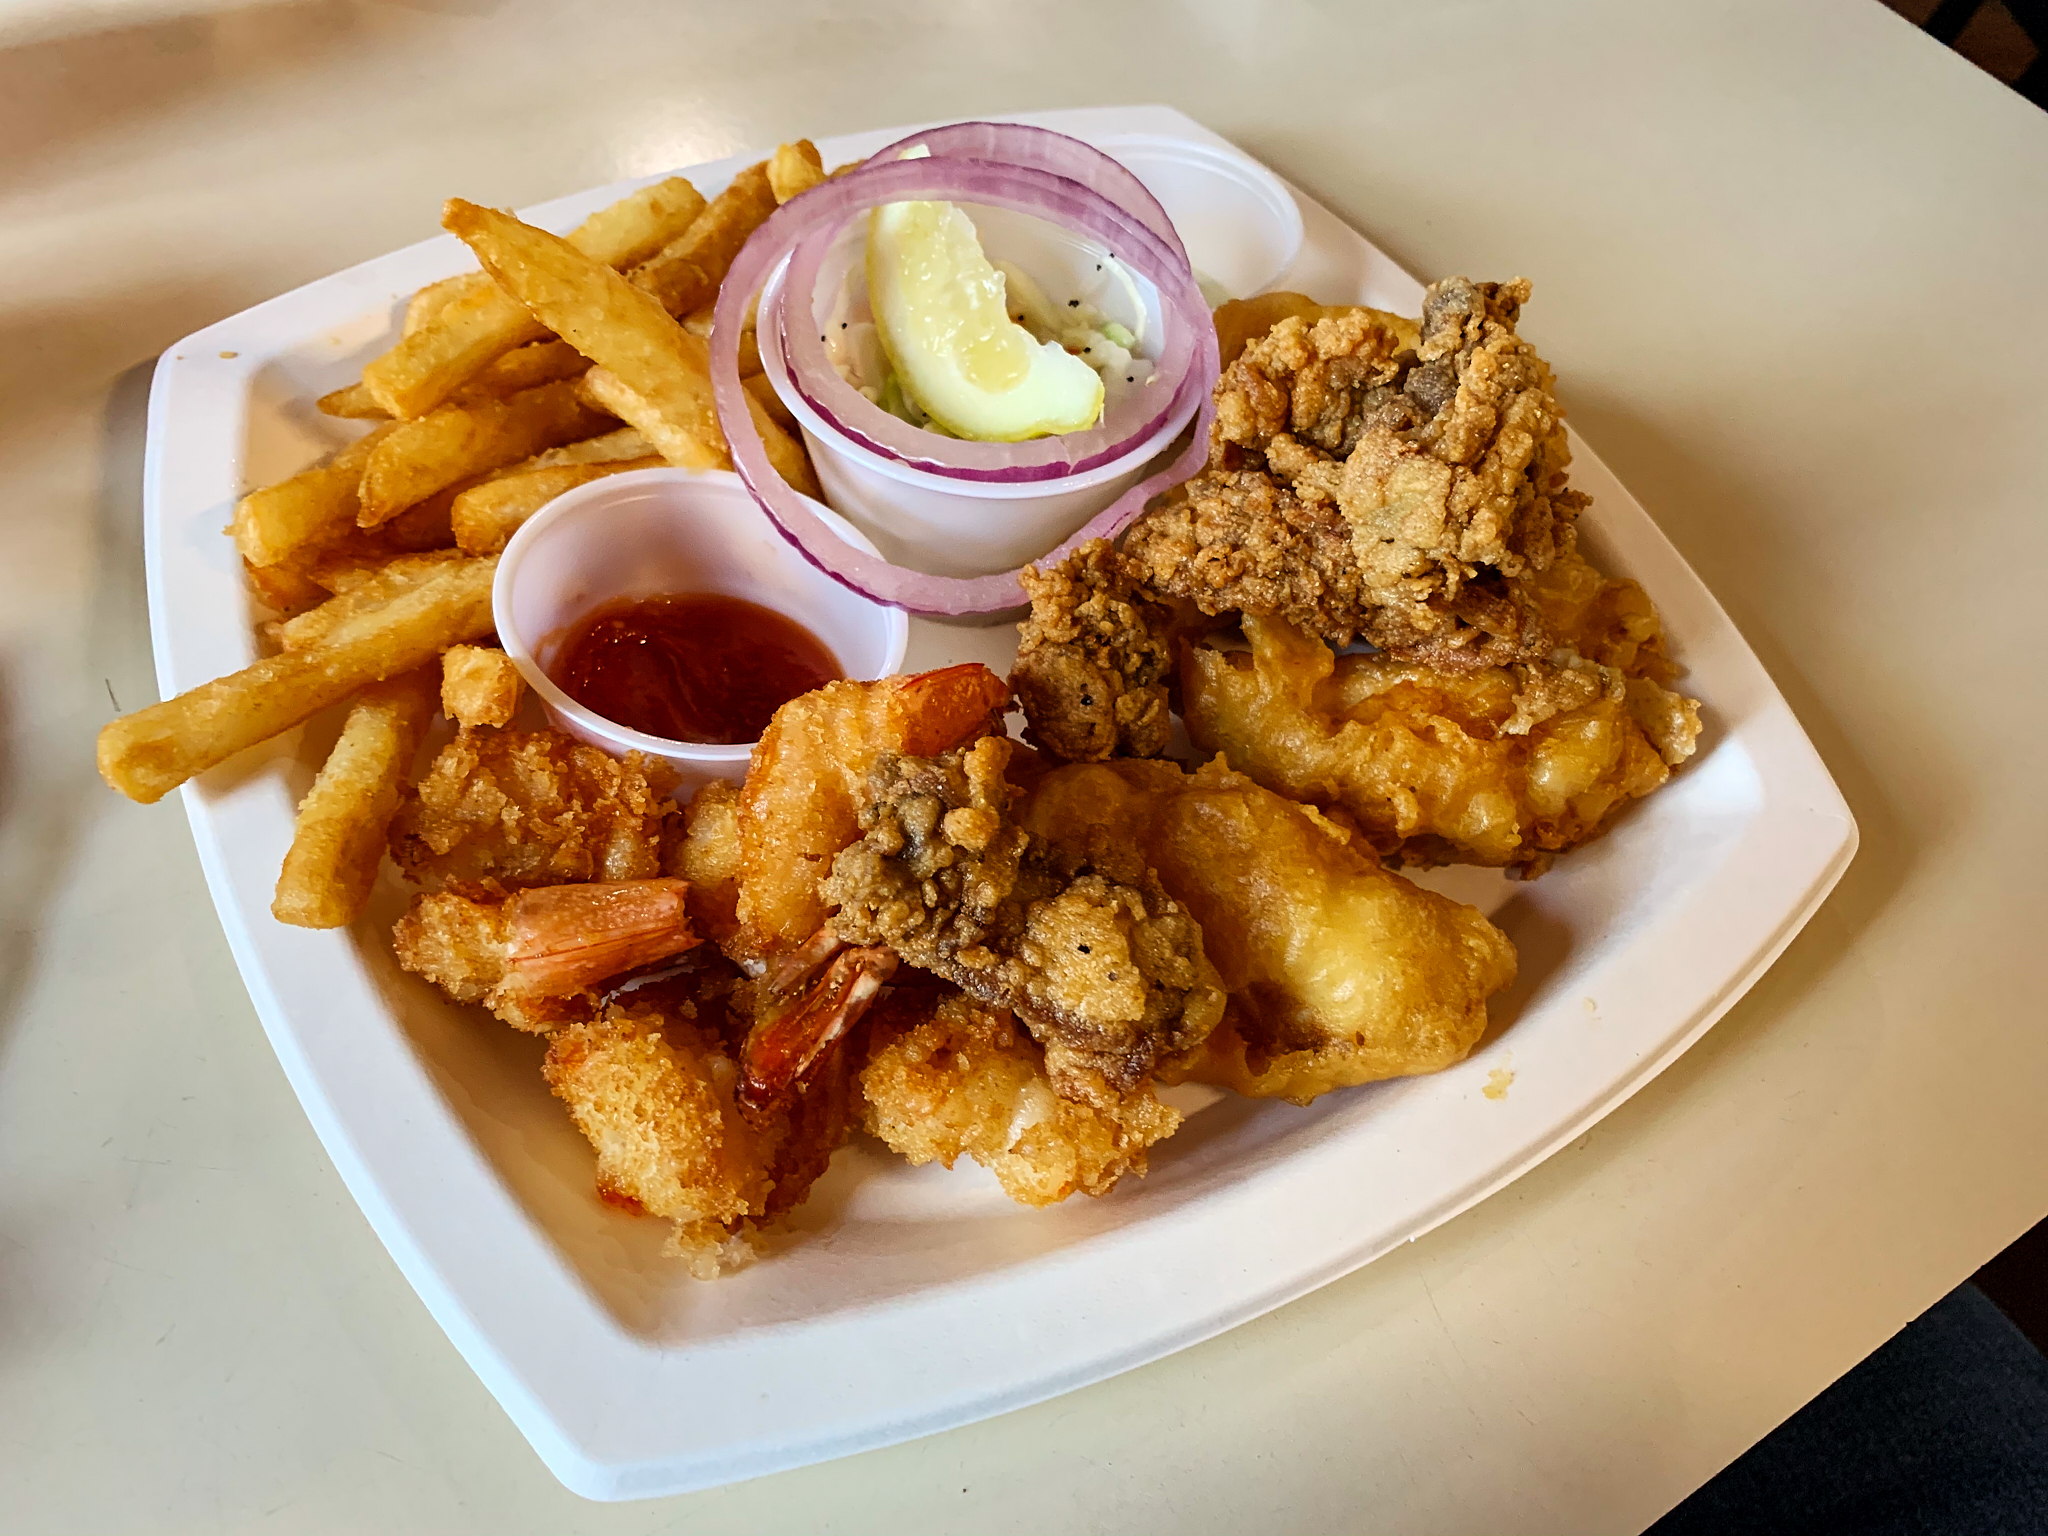 The seafood platter (dinner portion) from Snoopy's was awesome.